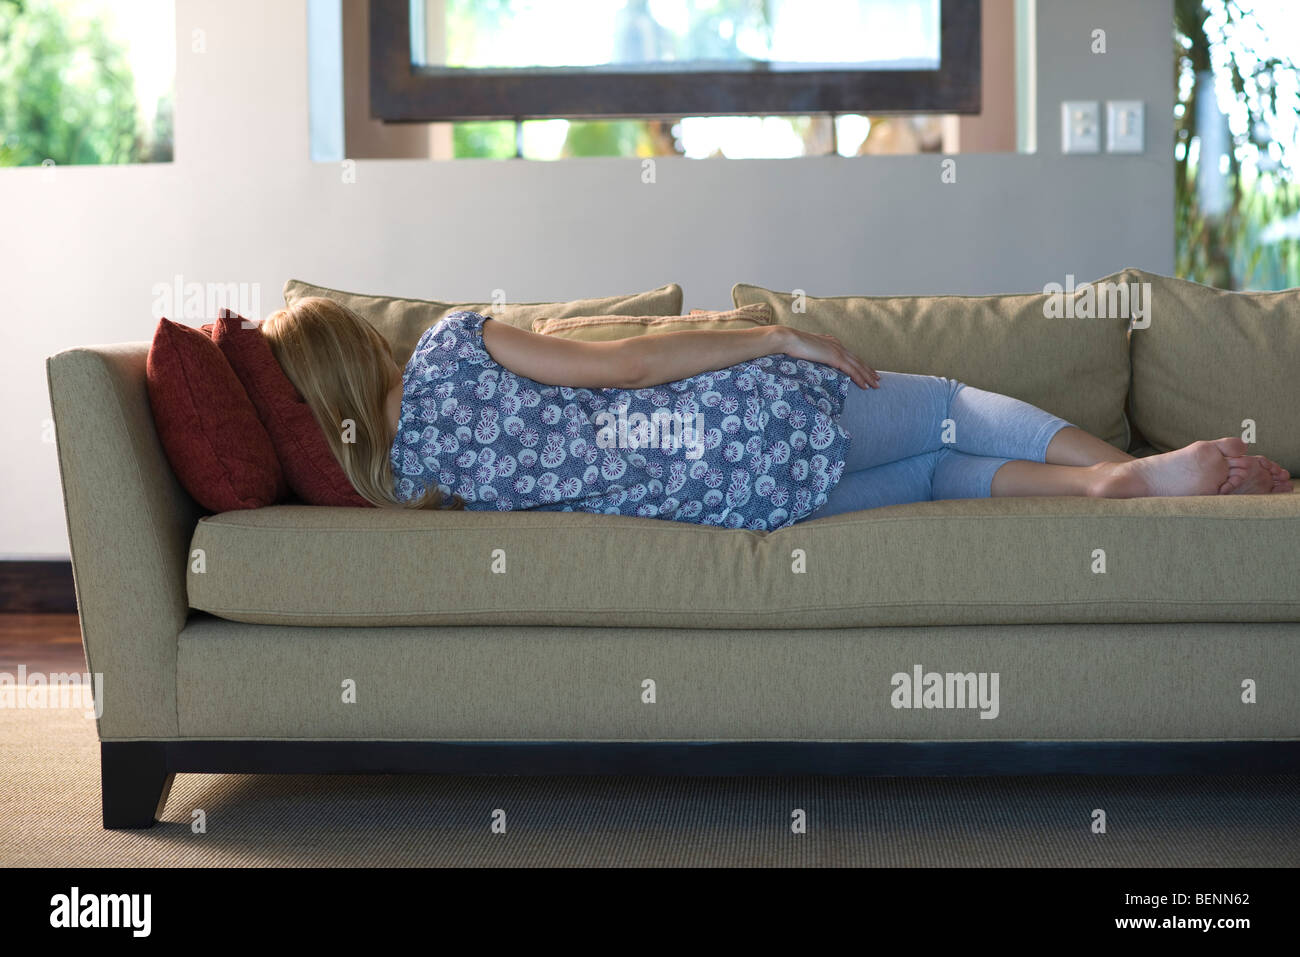 Young woman napping on sofa, rear view - Stock Image